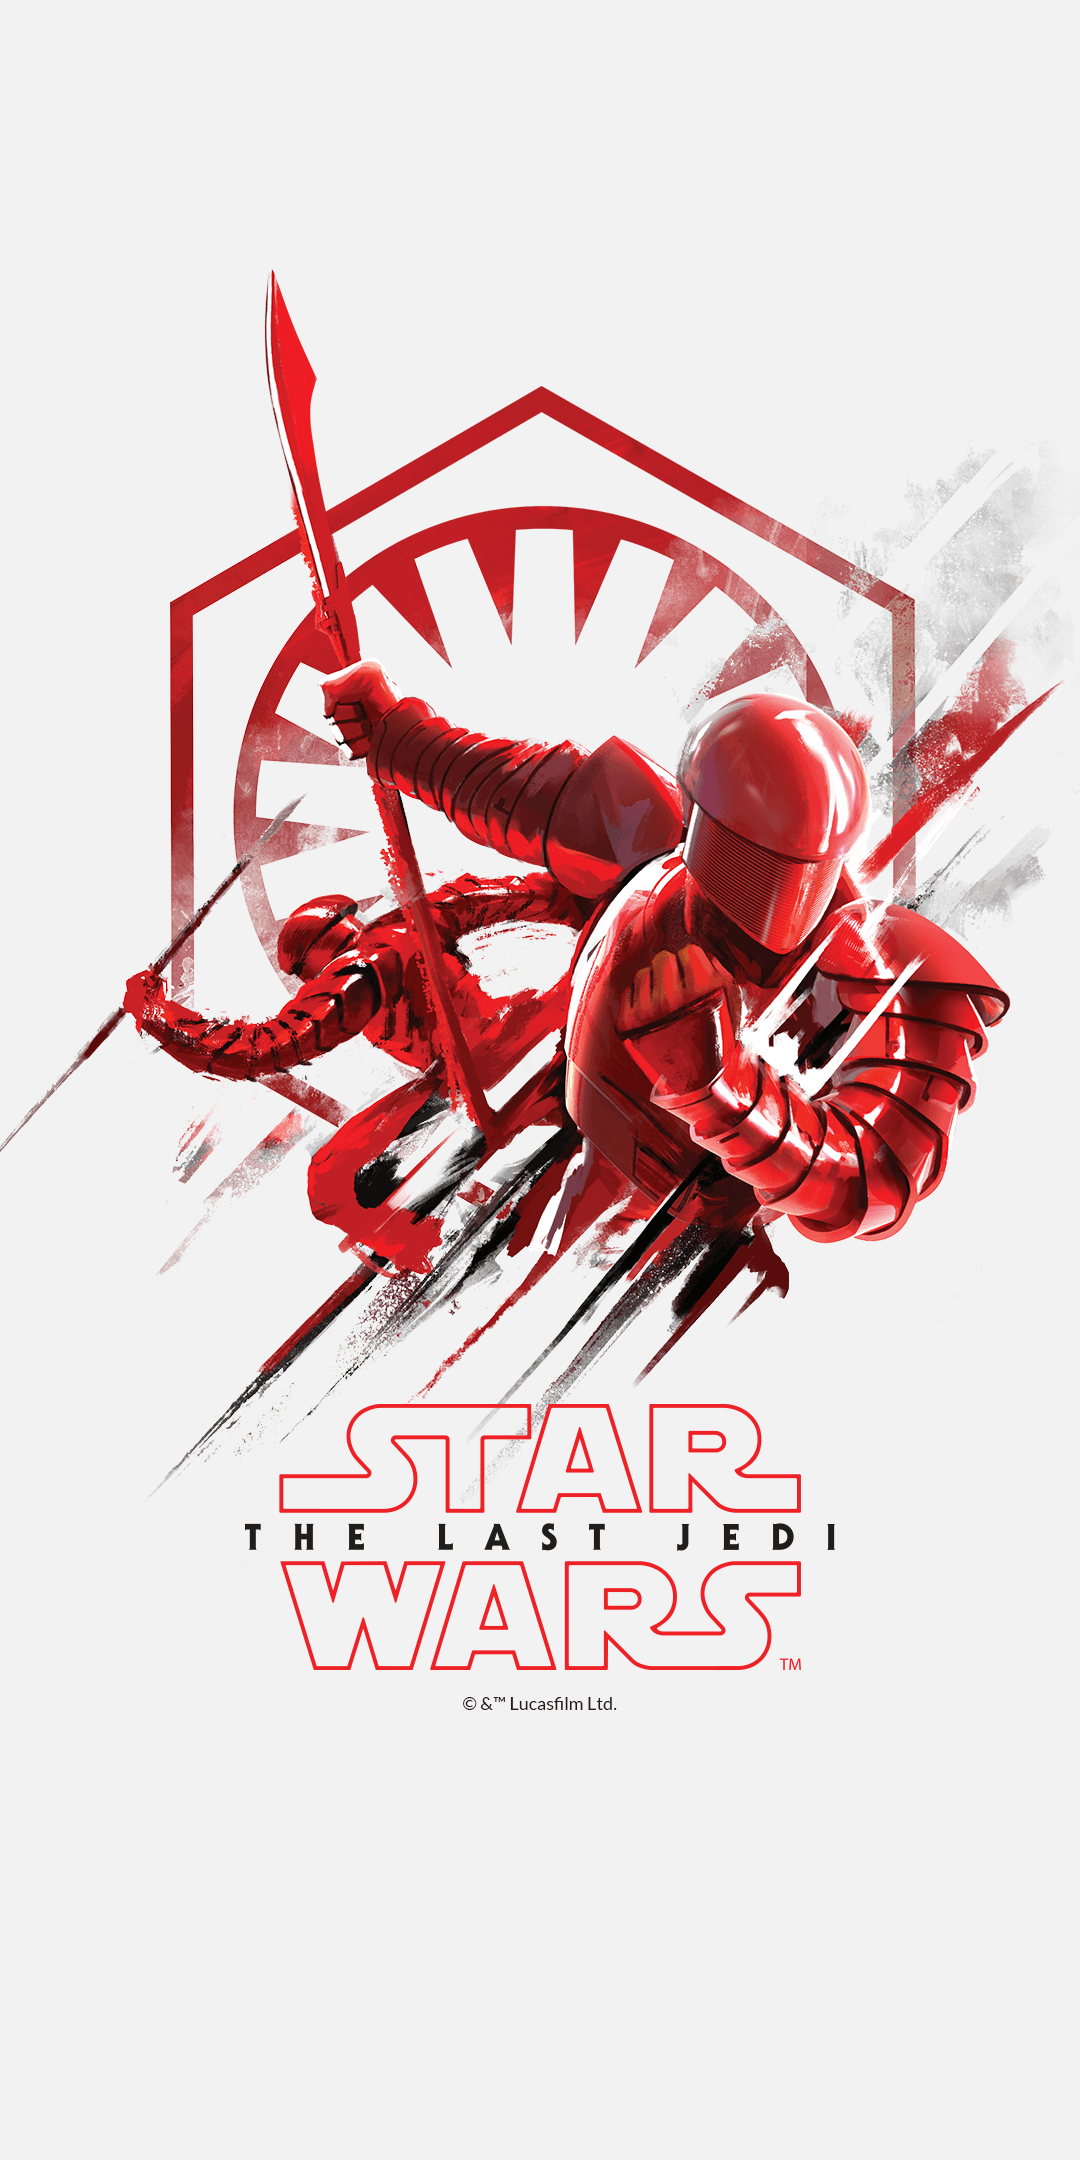 Download The Oneplus 5t Star Wars Edition Wallpapers Right Here